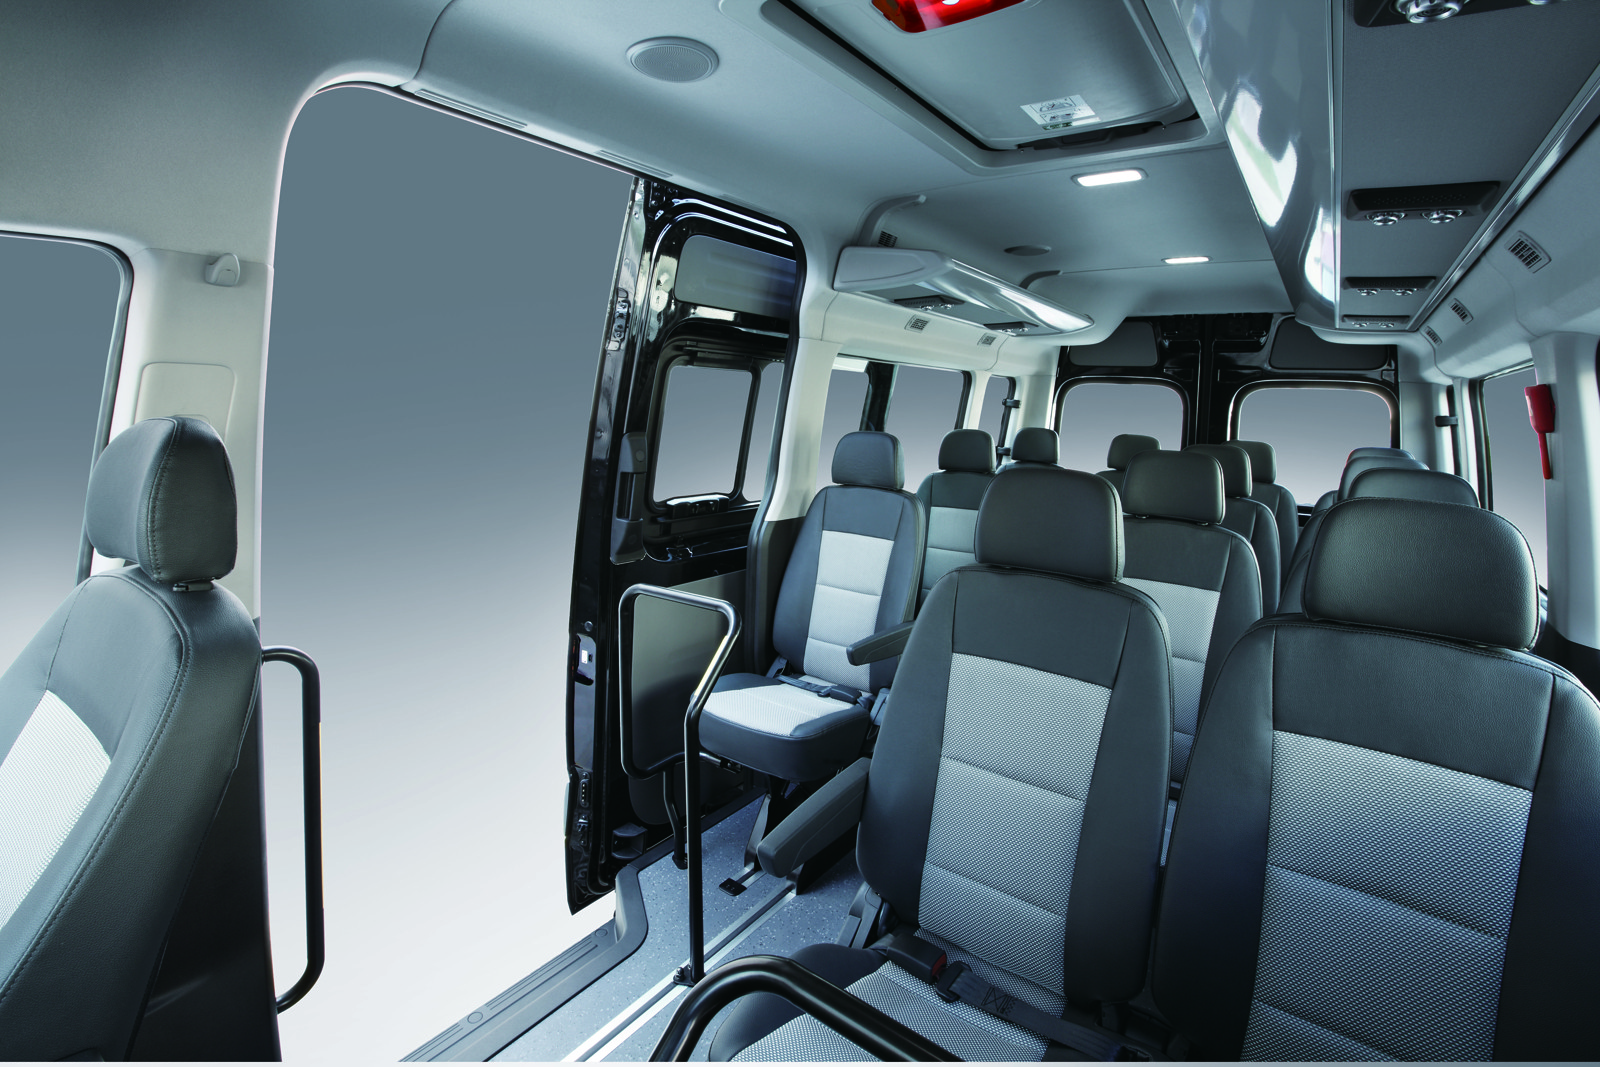 Ford Transit 150 Cargo Van >> Hyundai H350 is a Ford Transit Look-Alike Made in Turkey ...